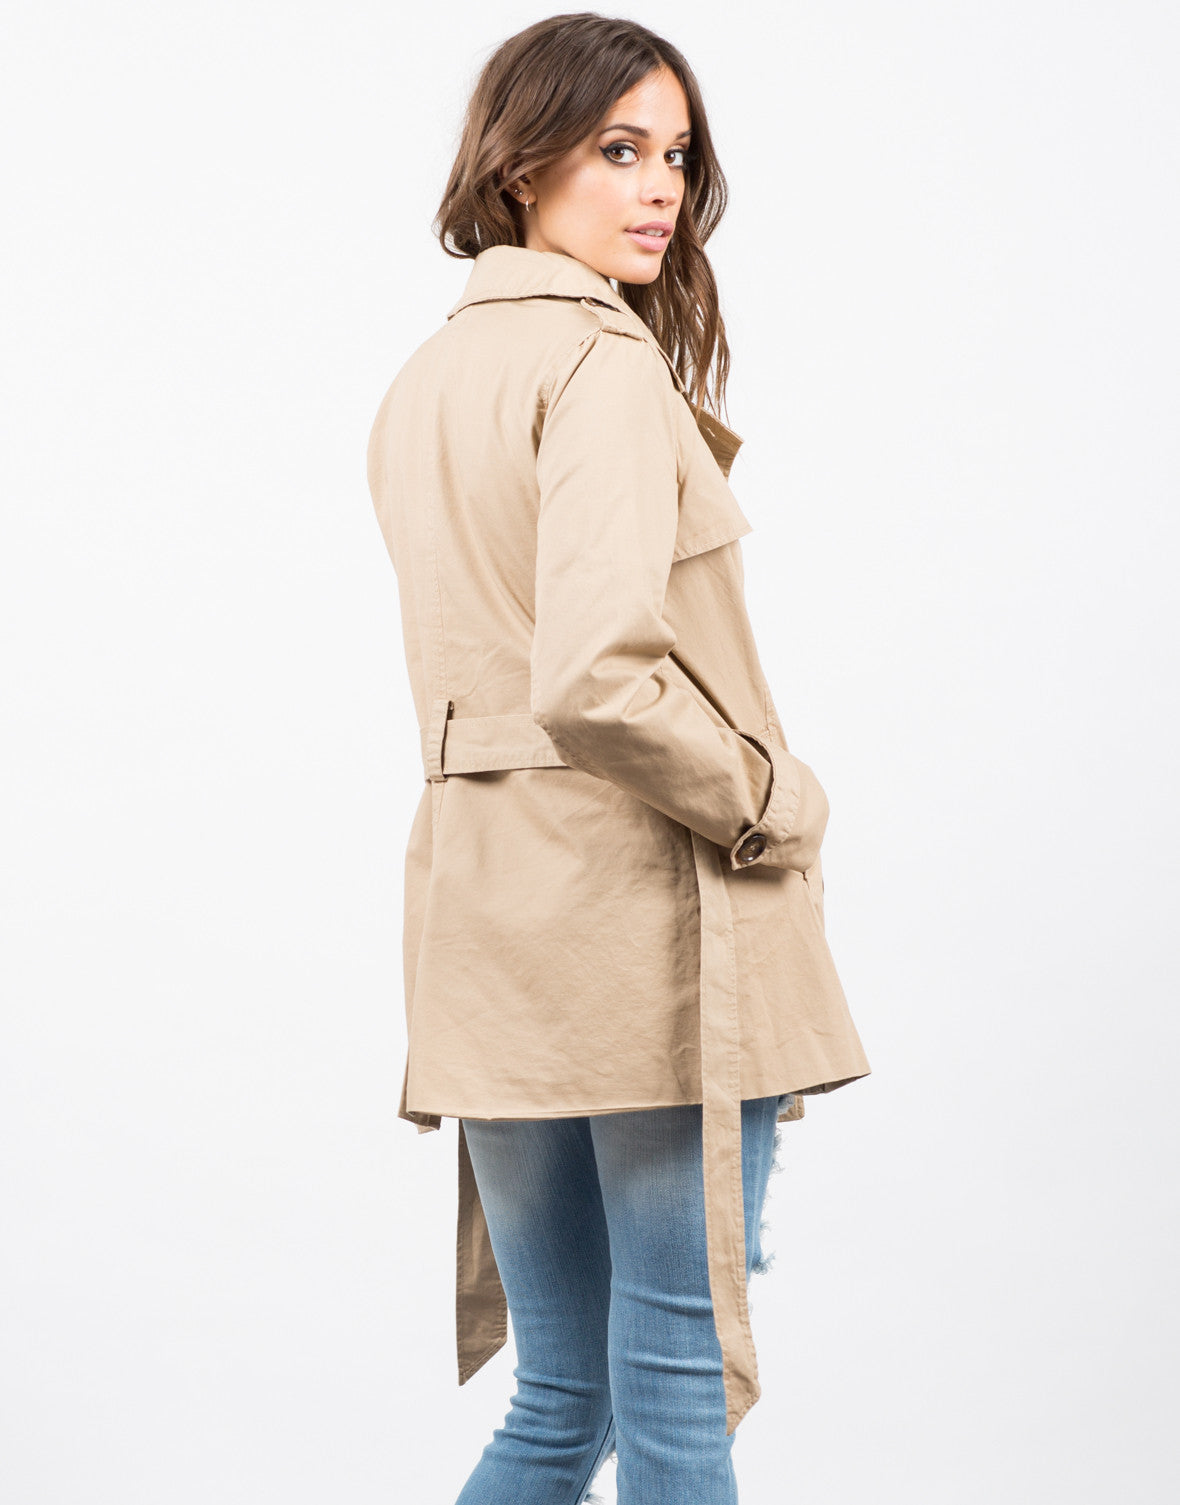 Back View of Collared Double Breasted Trench Coat